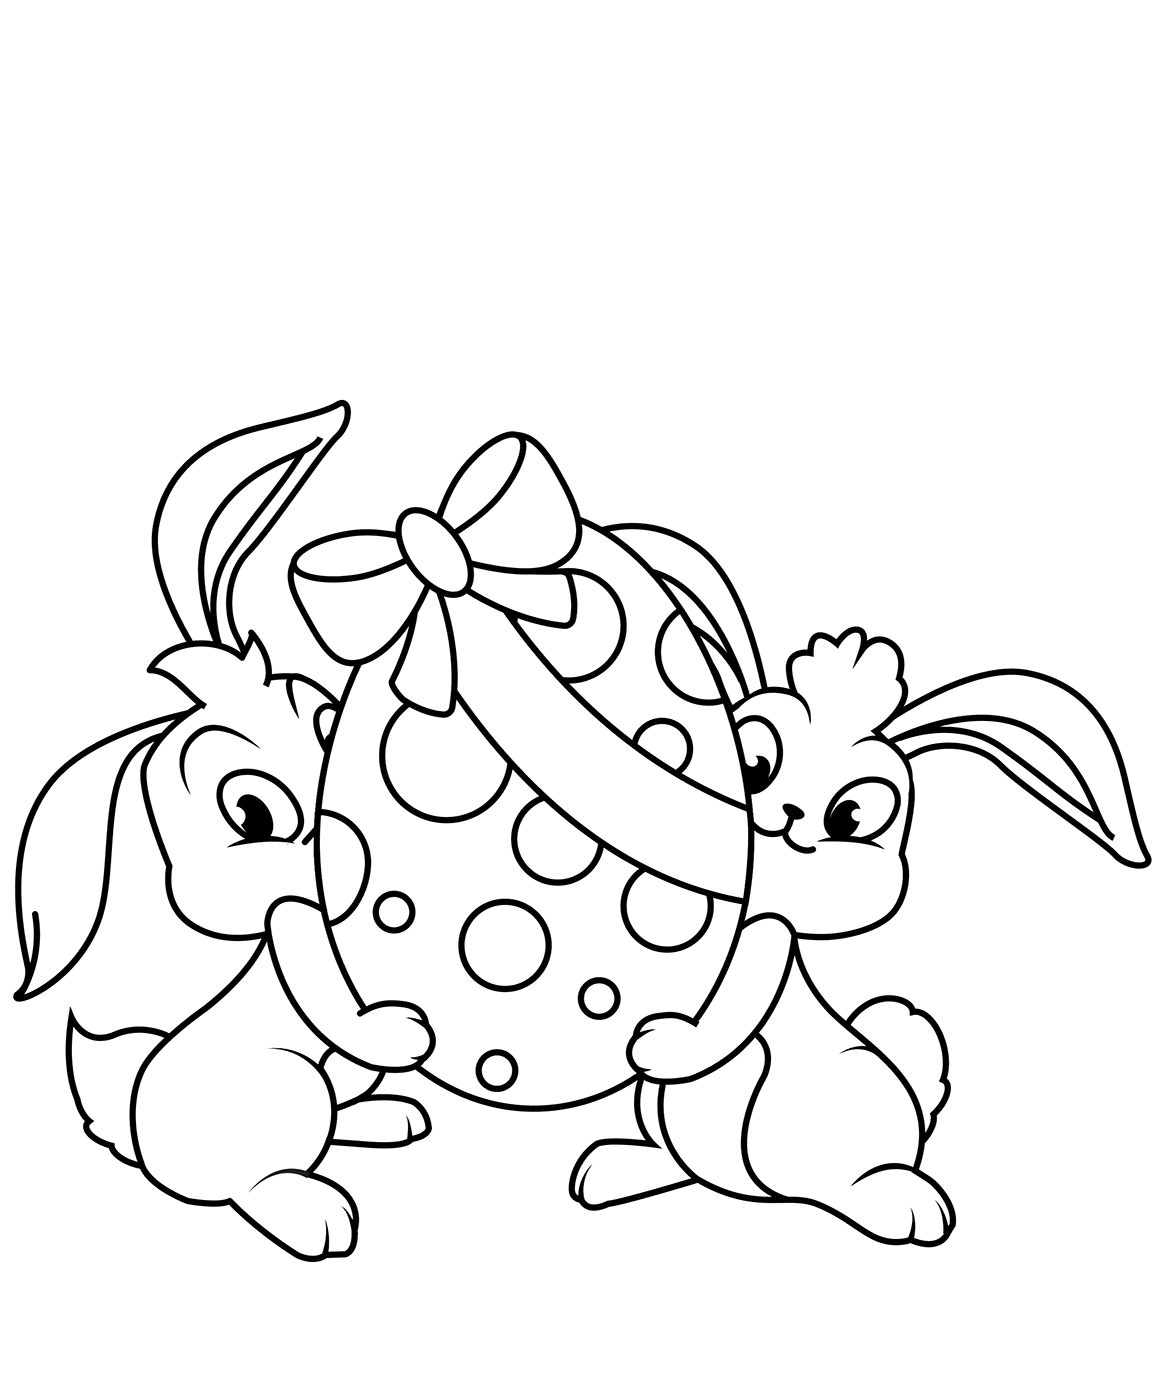 Two Bunnies With A Huge Easter Egg Coloring Page